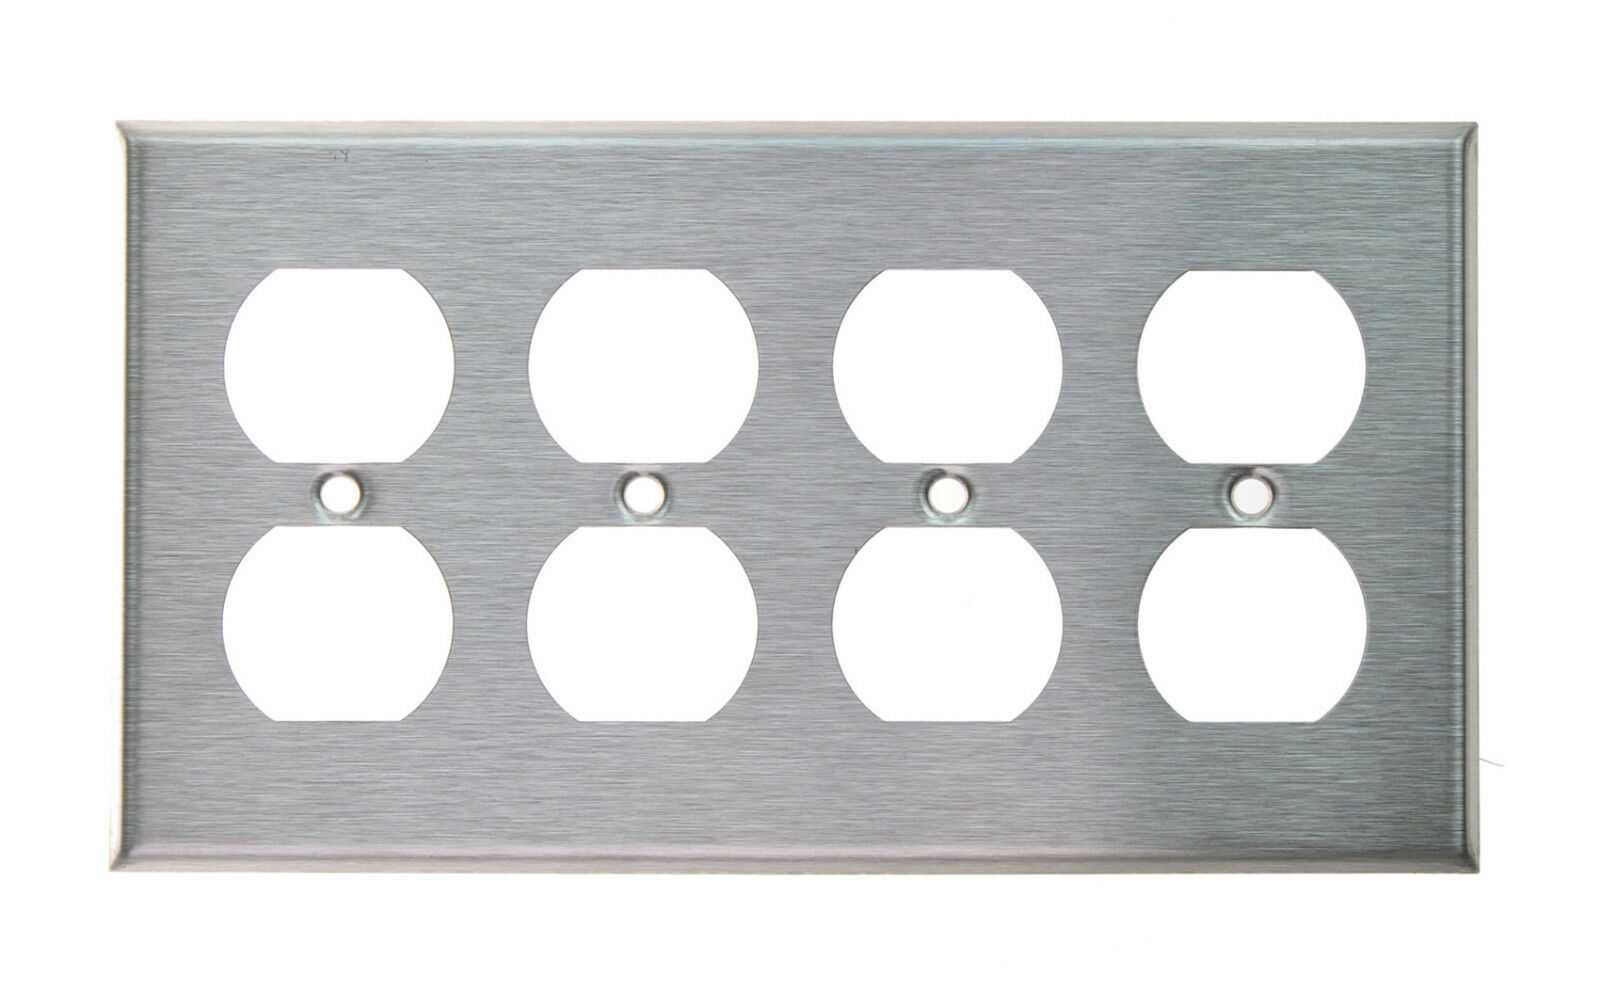 Brushed stainless steel outlet cover duplex receptacle